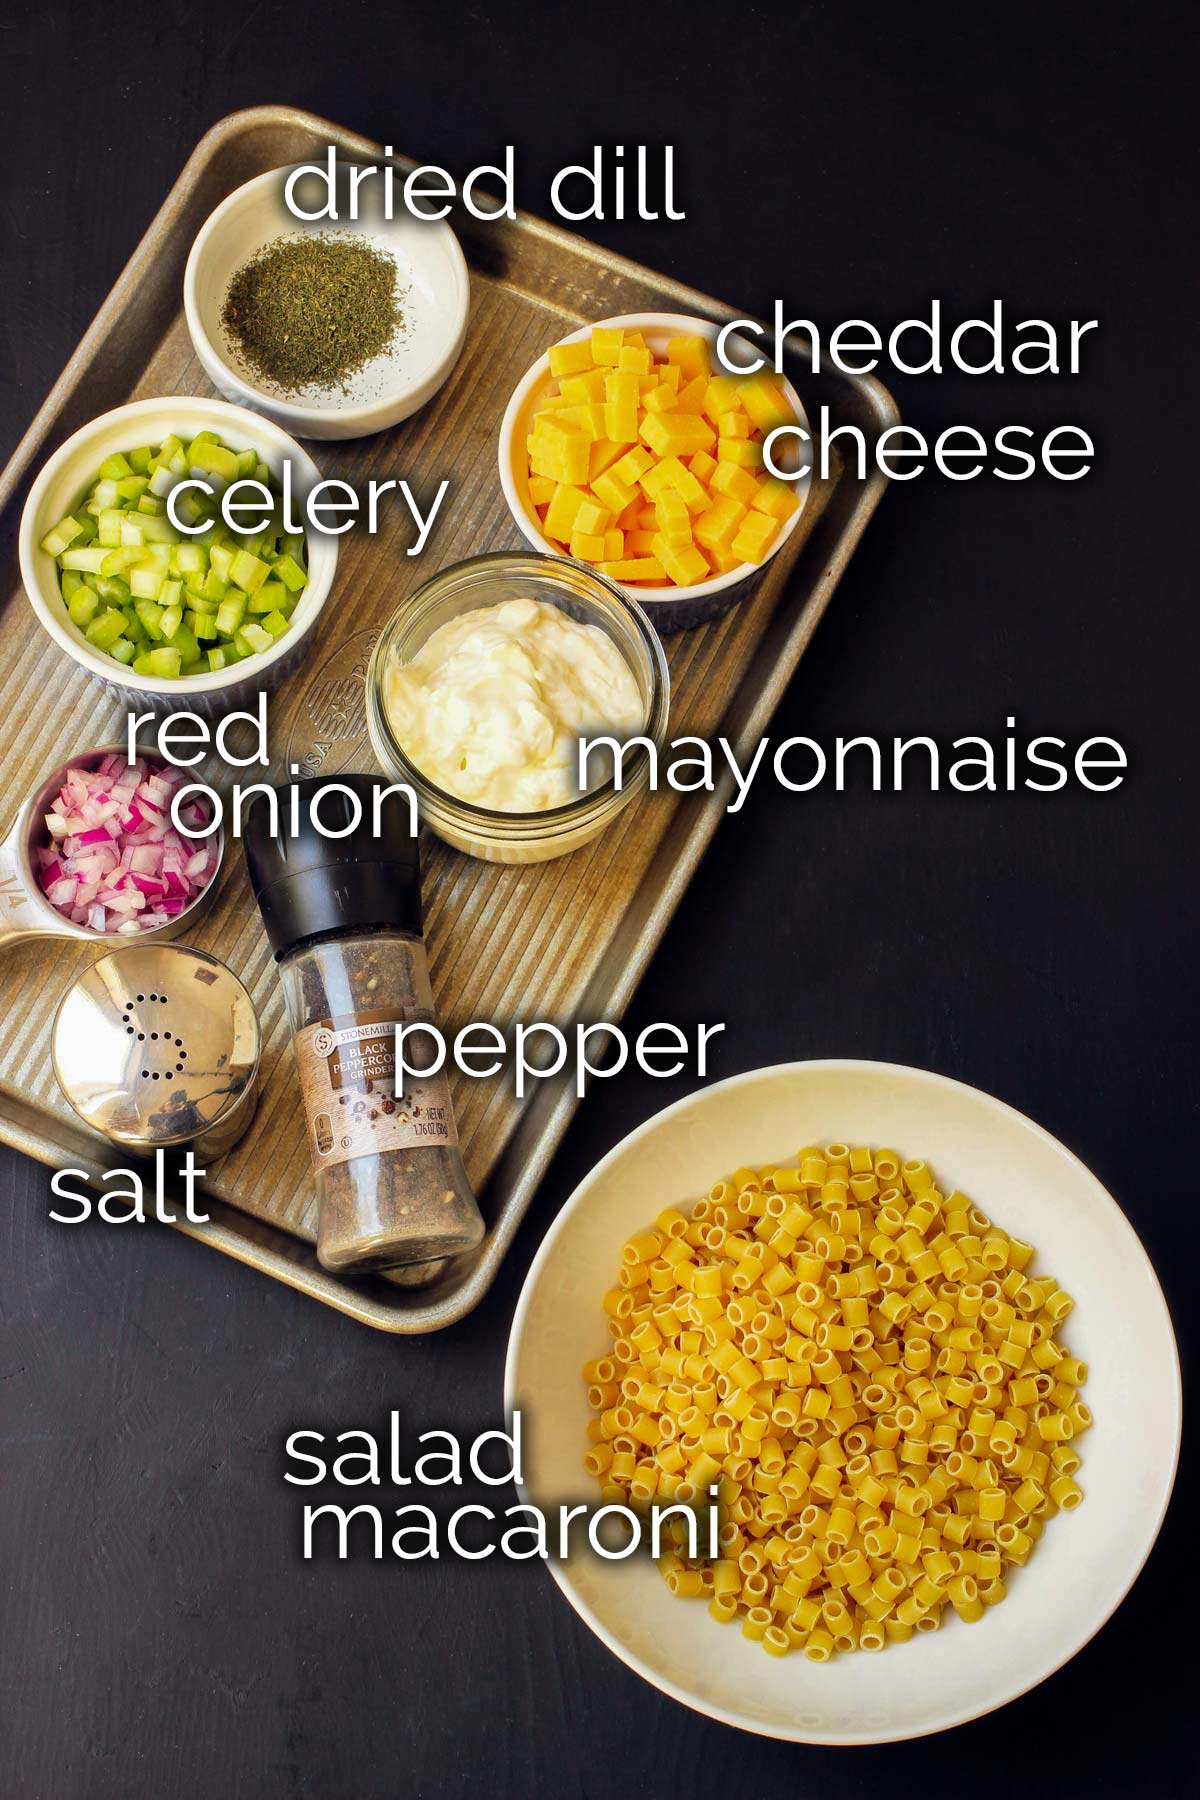 ingredients for macaroni salad laid out on black table.